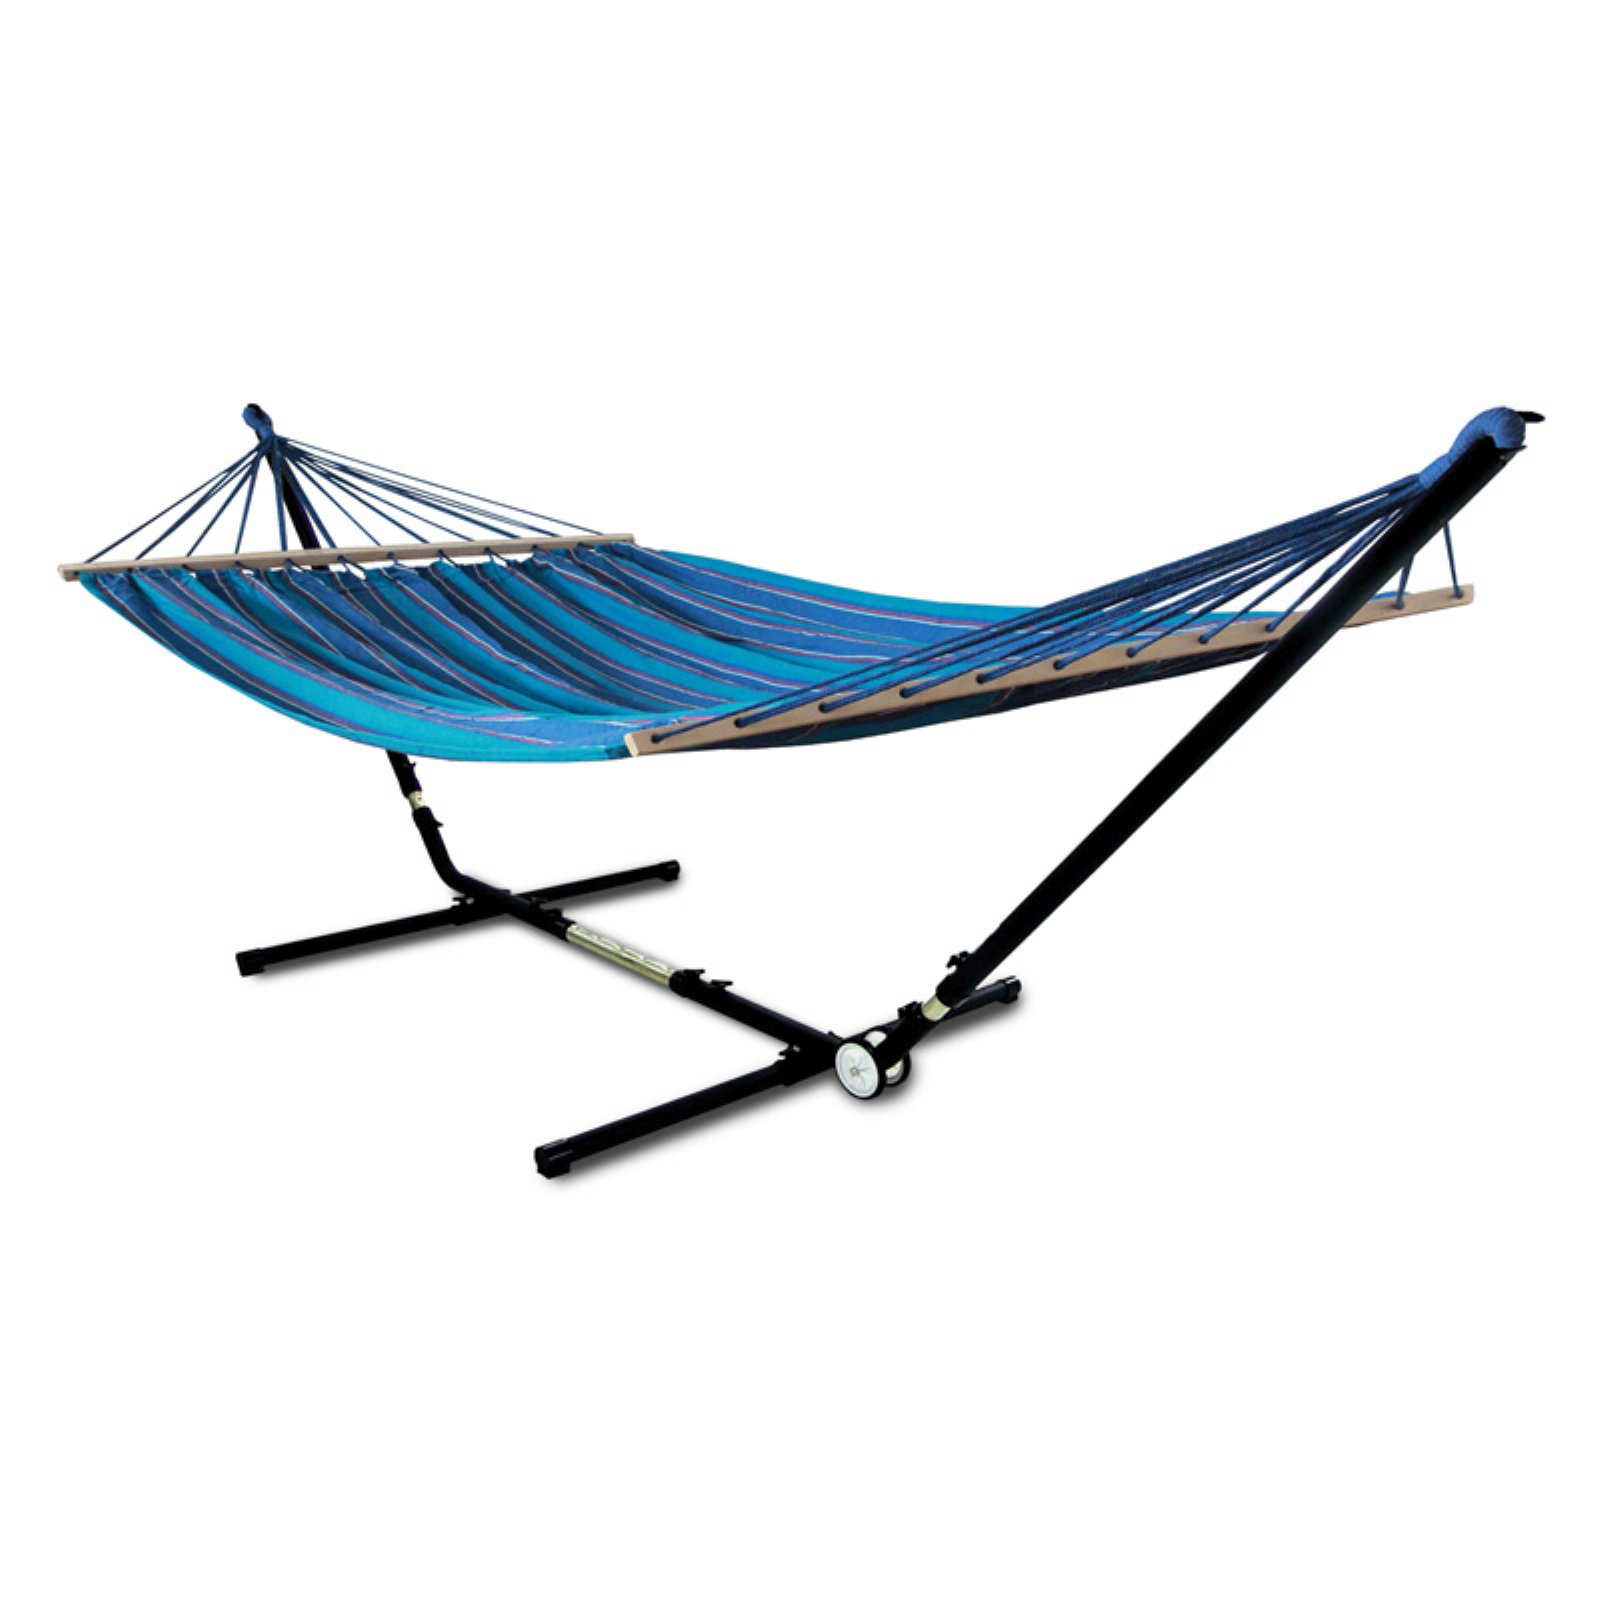 Exceptional Hammaka Woven Hammock With Adjust To Fit Stand   Walmart.com